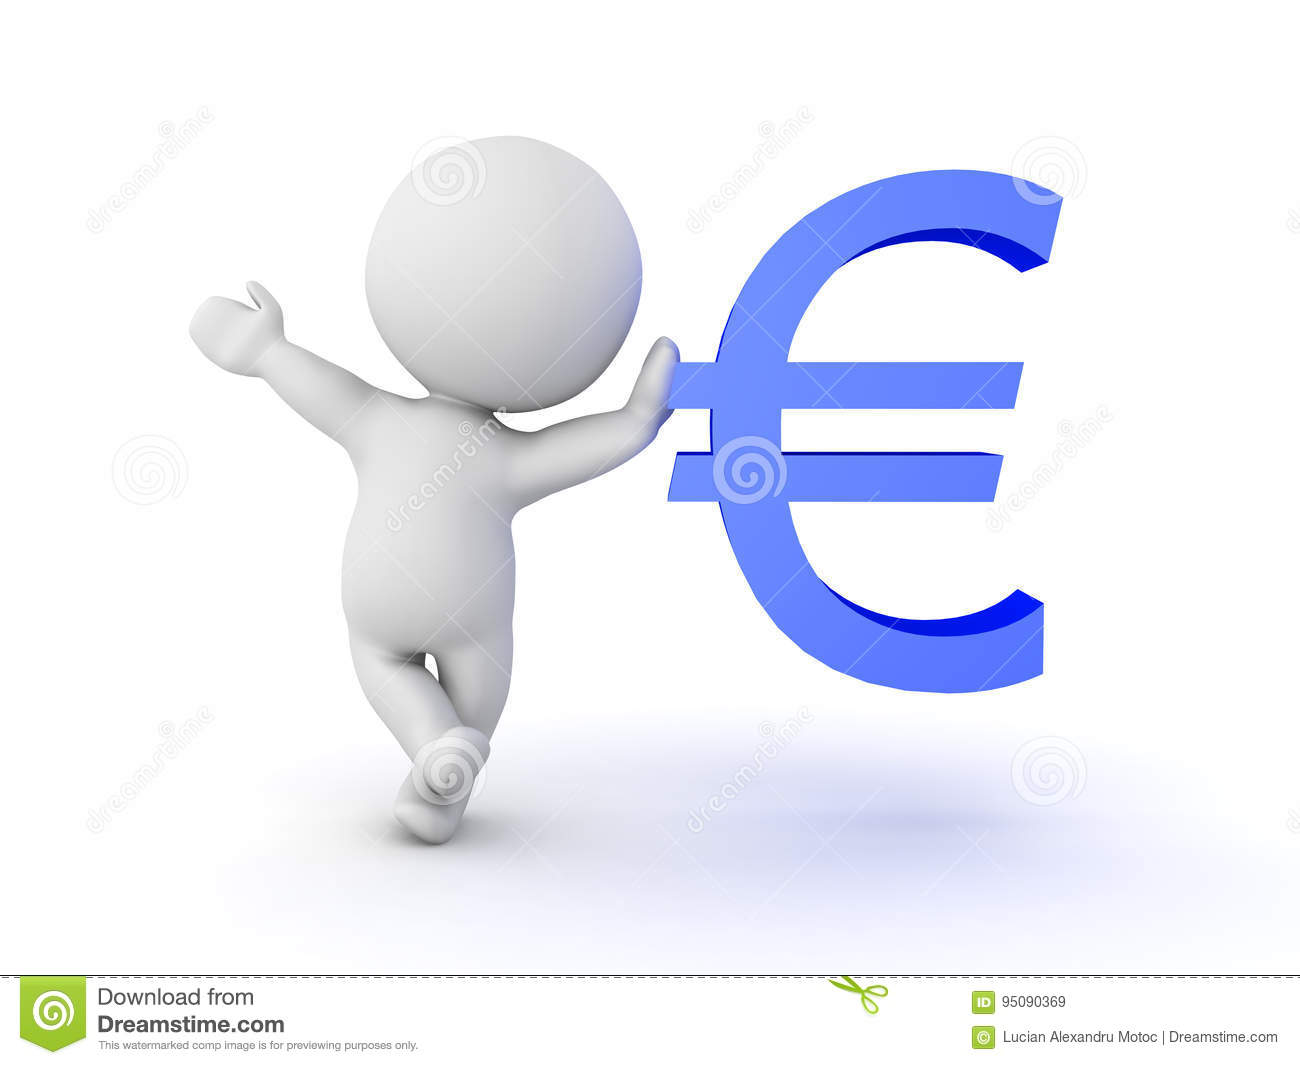 3d character leaning on blue euro currency symbol stock illustration 3d character leaning on blue euro currency symbol buycottarizona Choice Image